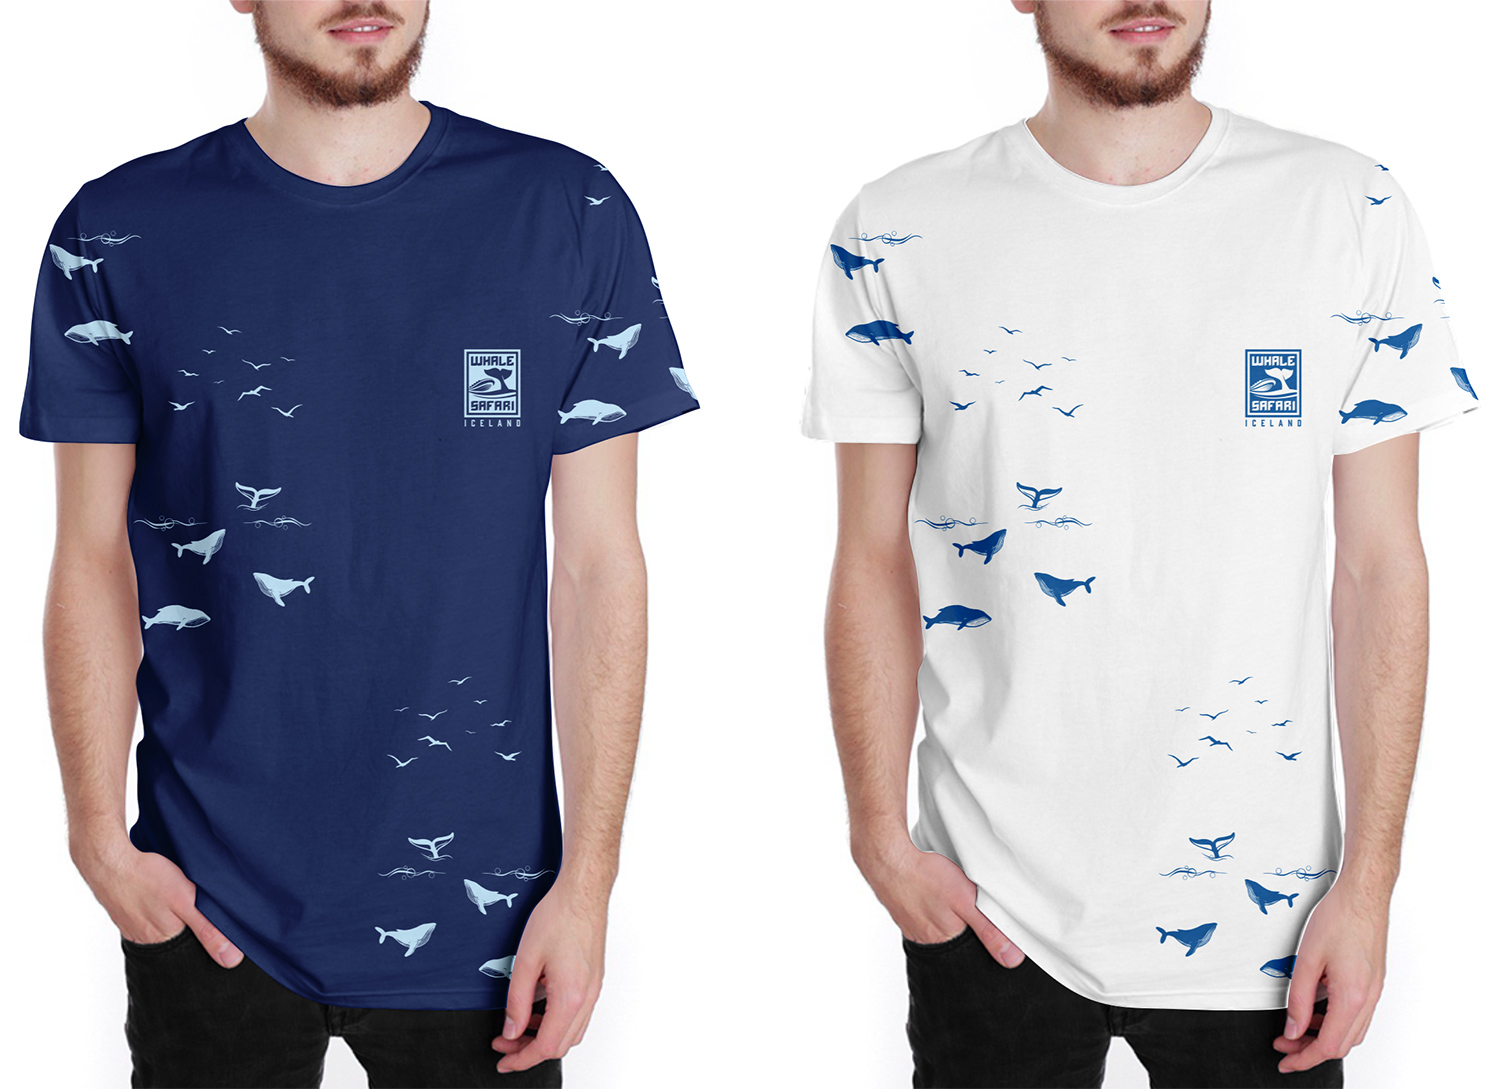 Design t shirt buy - T Shirt Design By Rockalight For Whale Safari T Shirt For Sale In Ticket